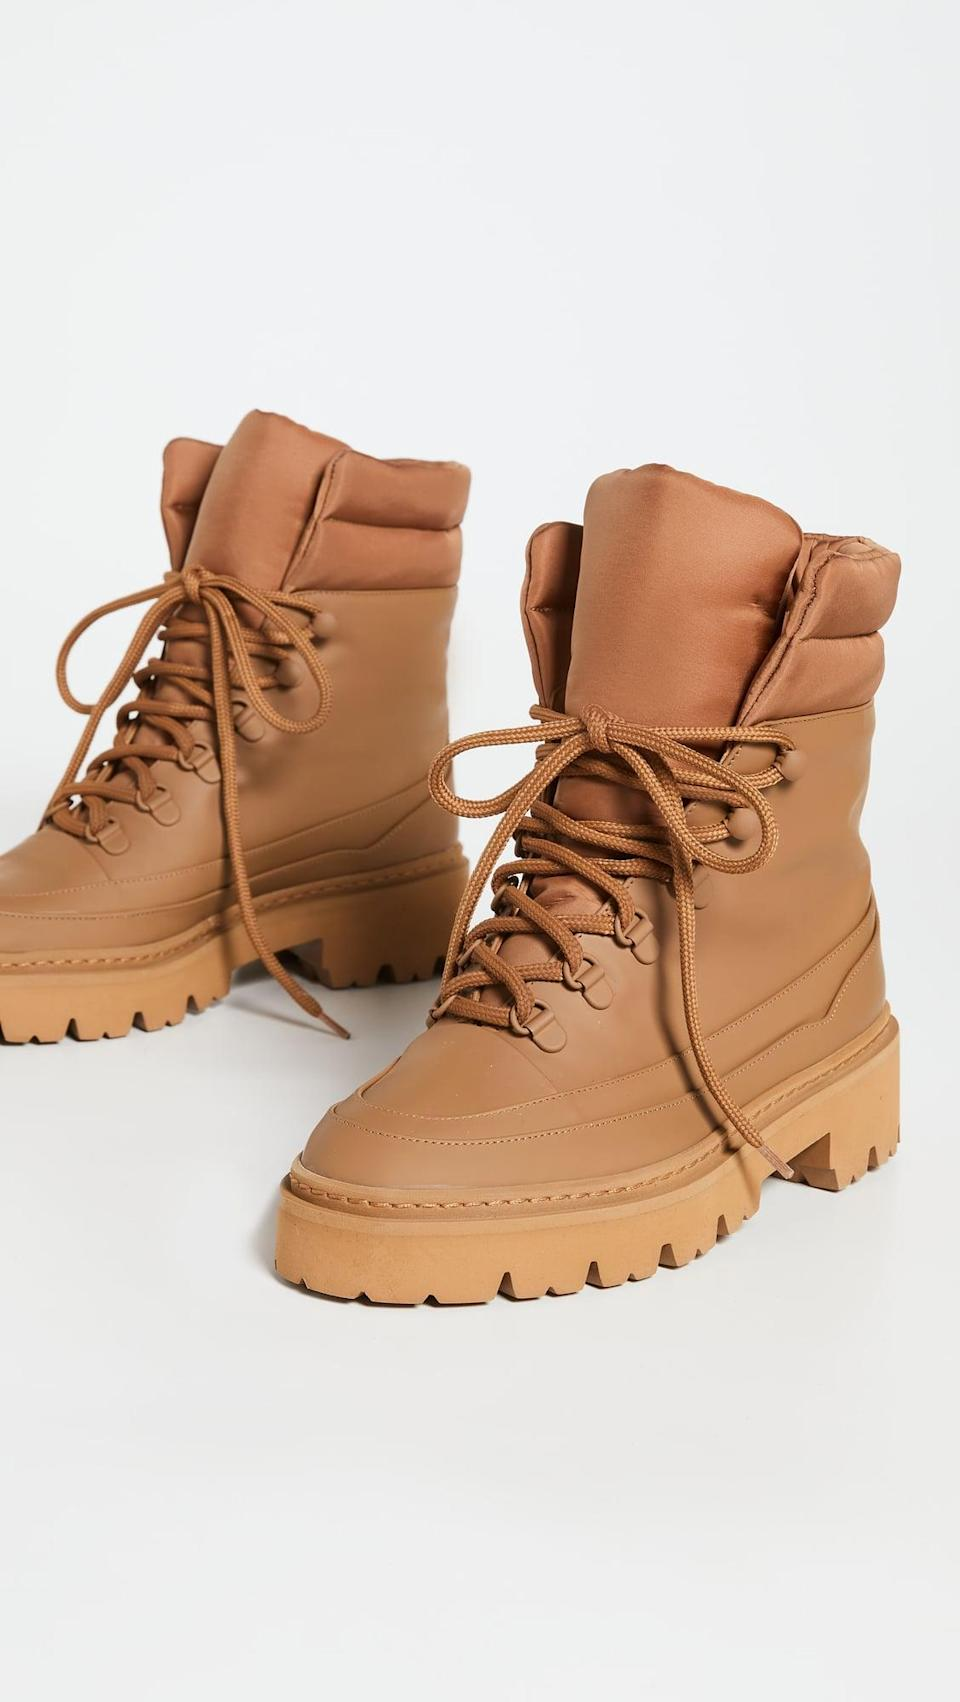 <p>These <span>Gia Borghini Terra Puffy Top Hiking Boots</span> ($595) are comfortable and cool. We might not wear them climbing Everest, but they're great for pretty much anywhere else.</p>